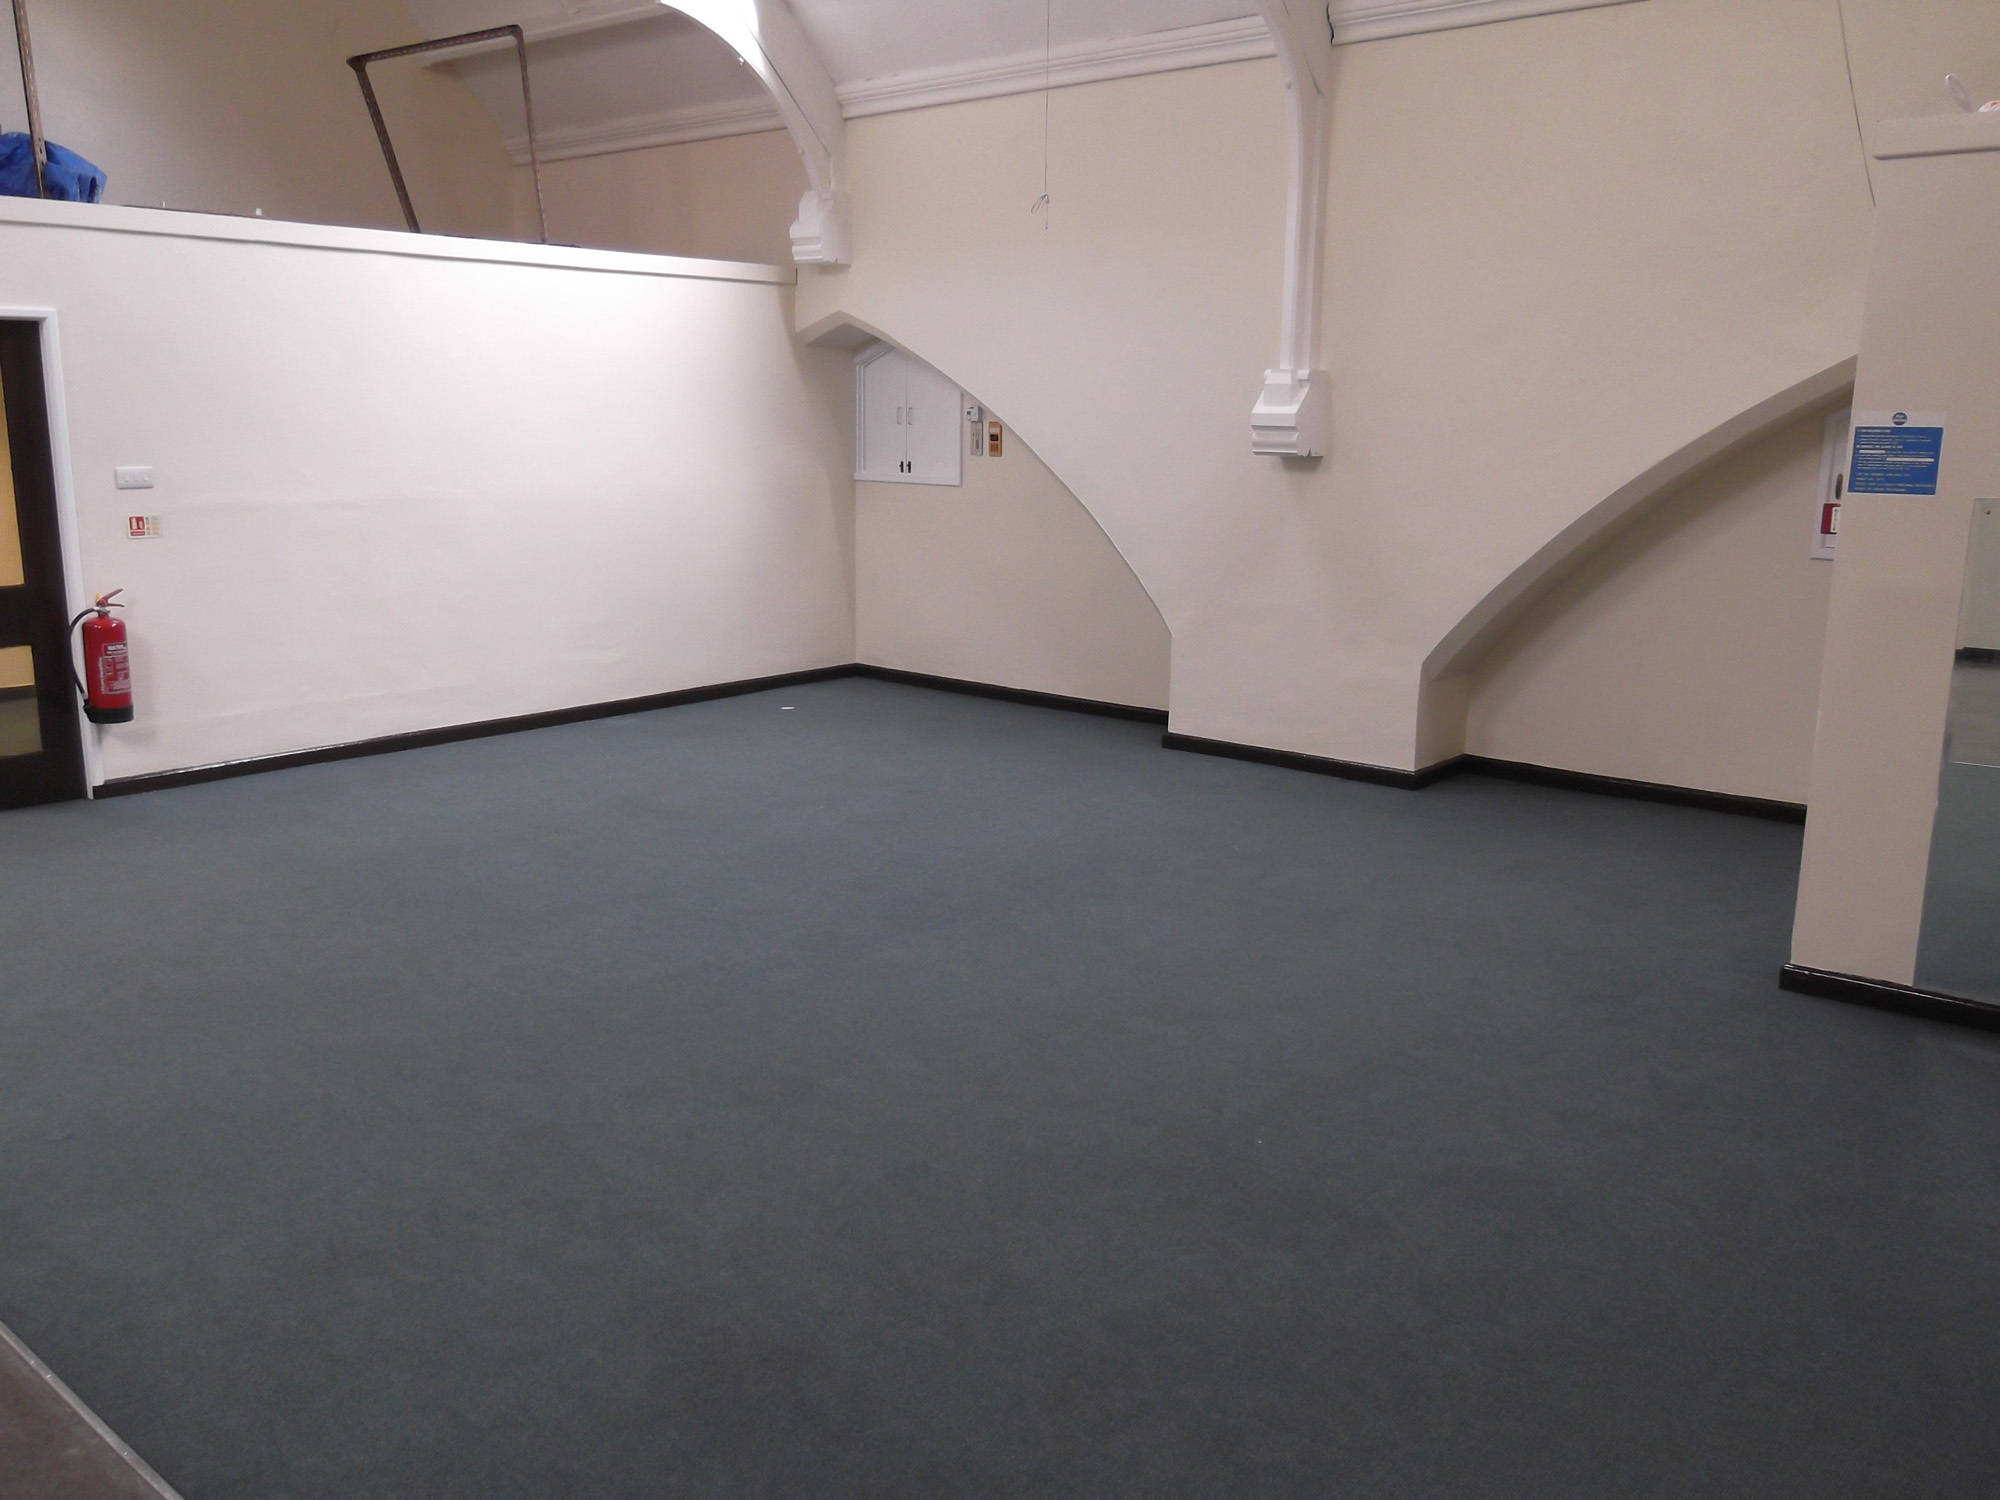 Carpet Area Of Community Room